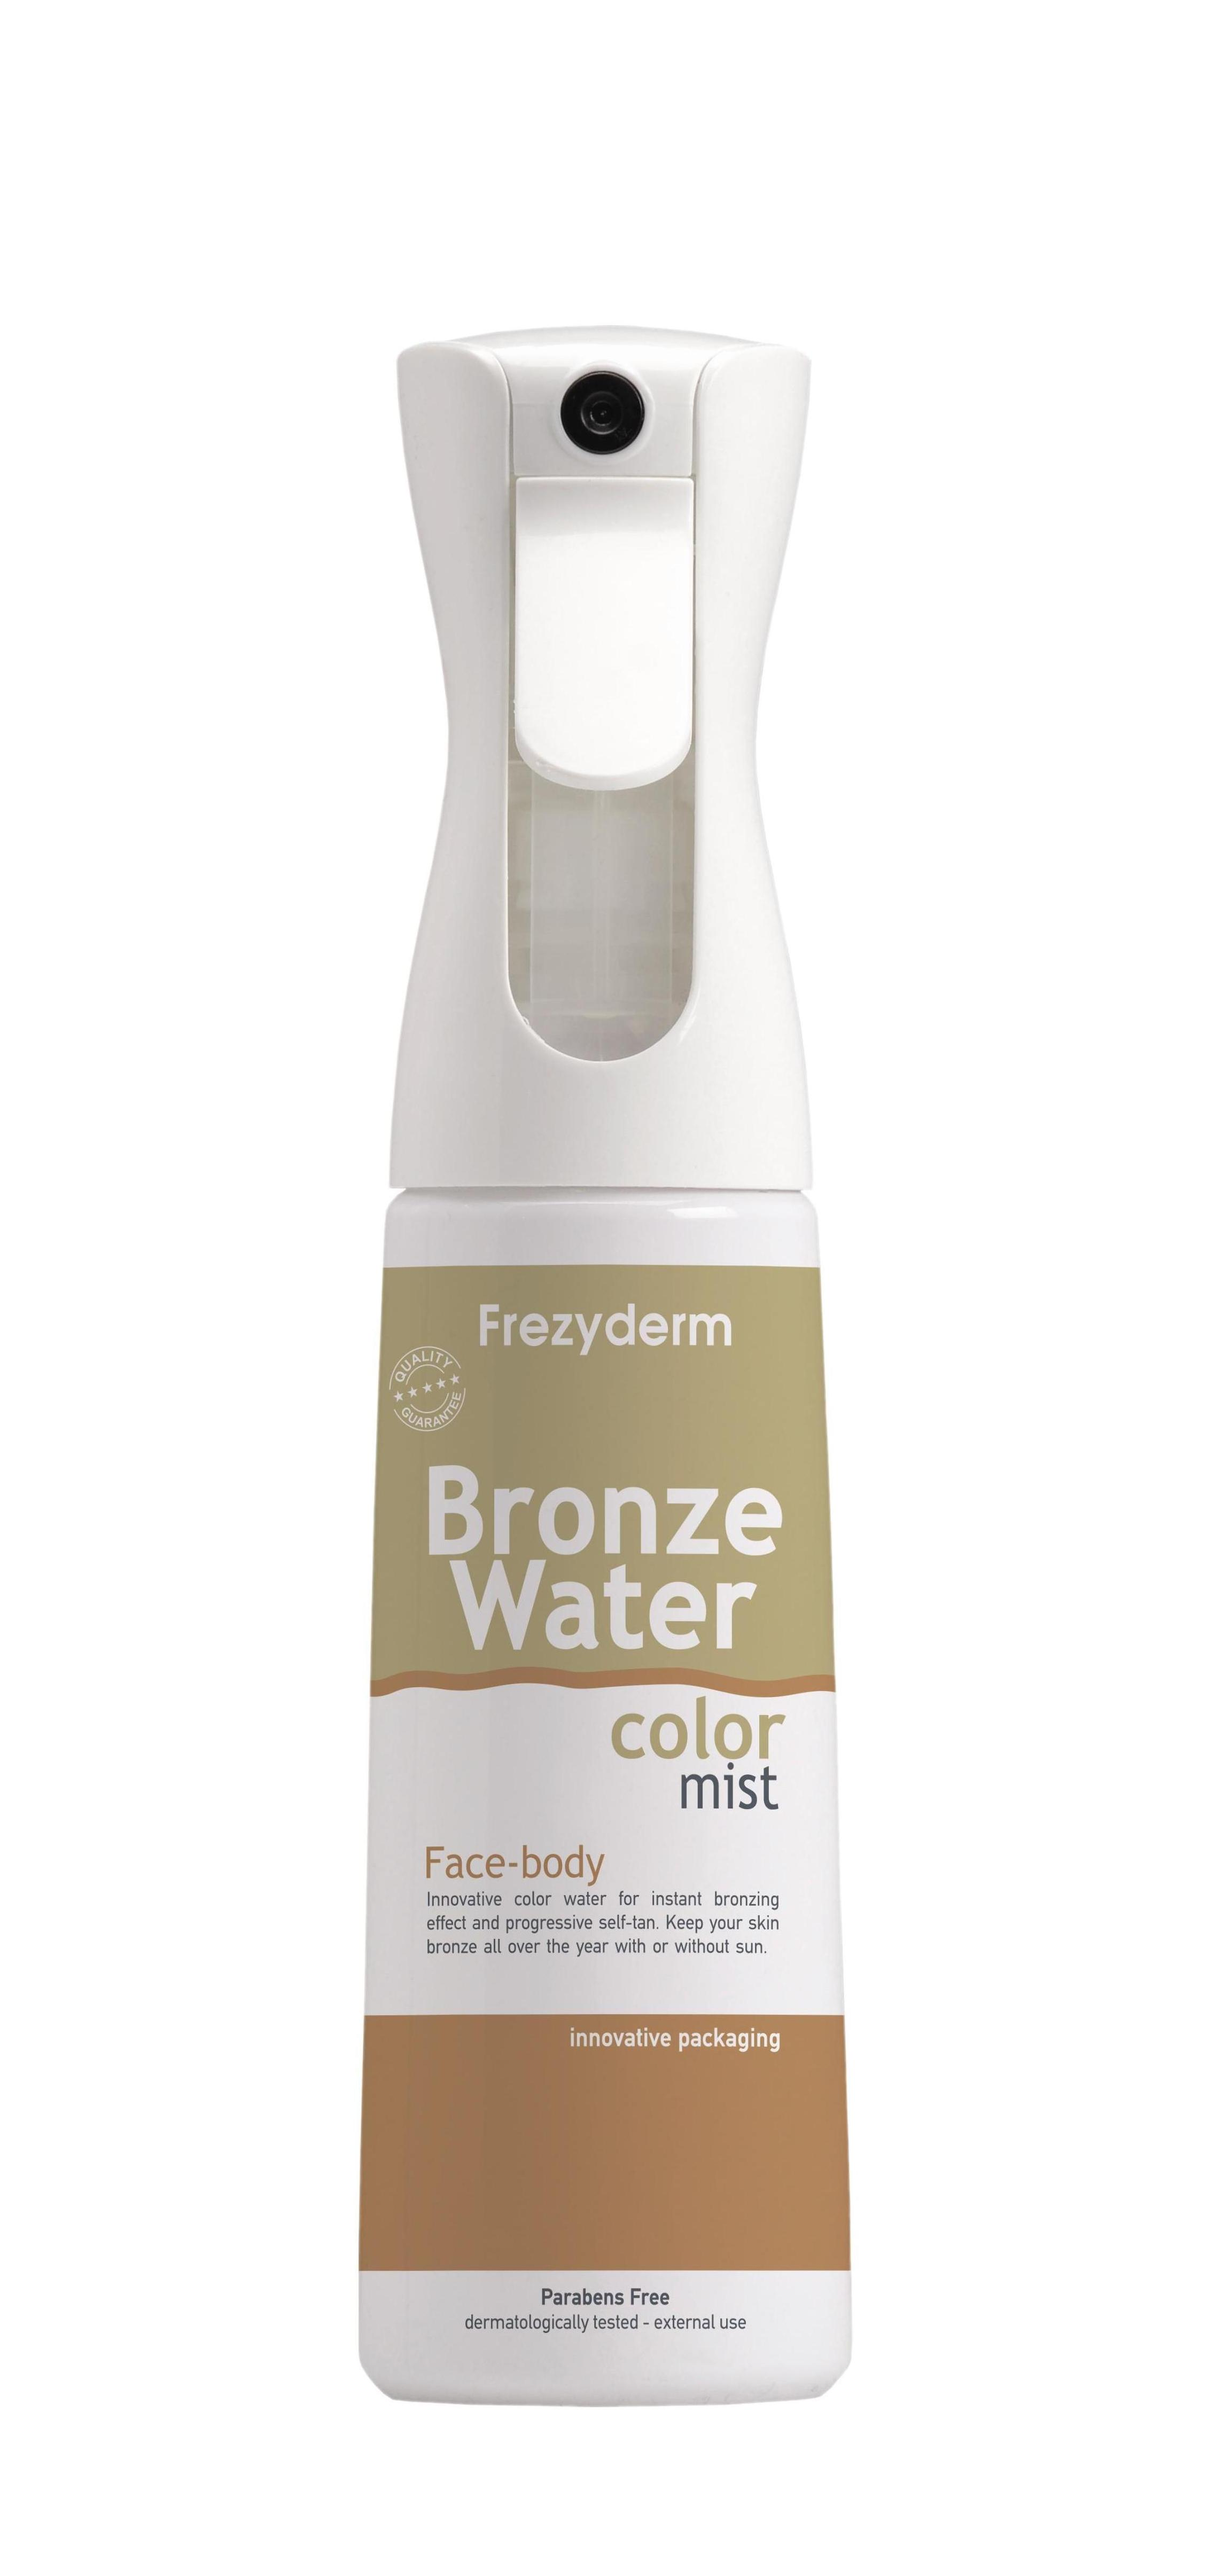 Frezyderm_Bronze Water Color_300ml_PVPR 26,80 eur